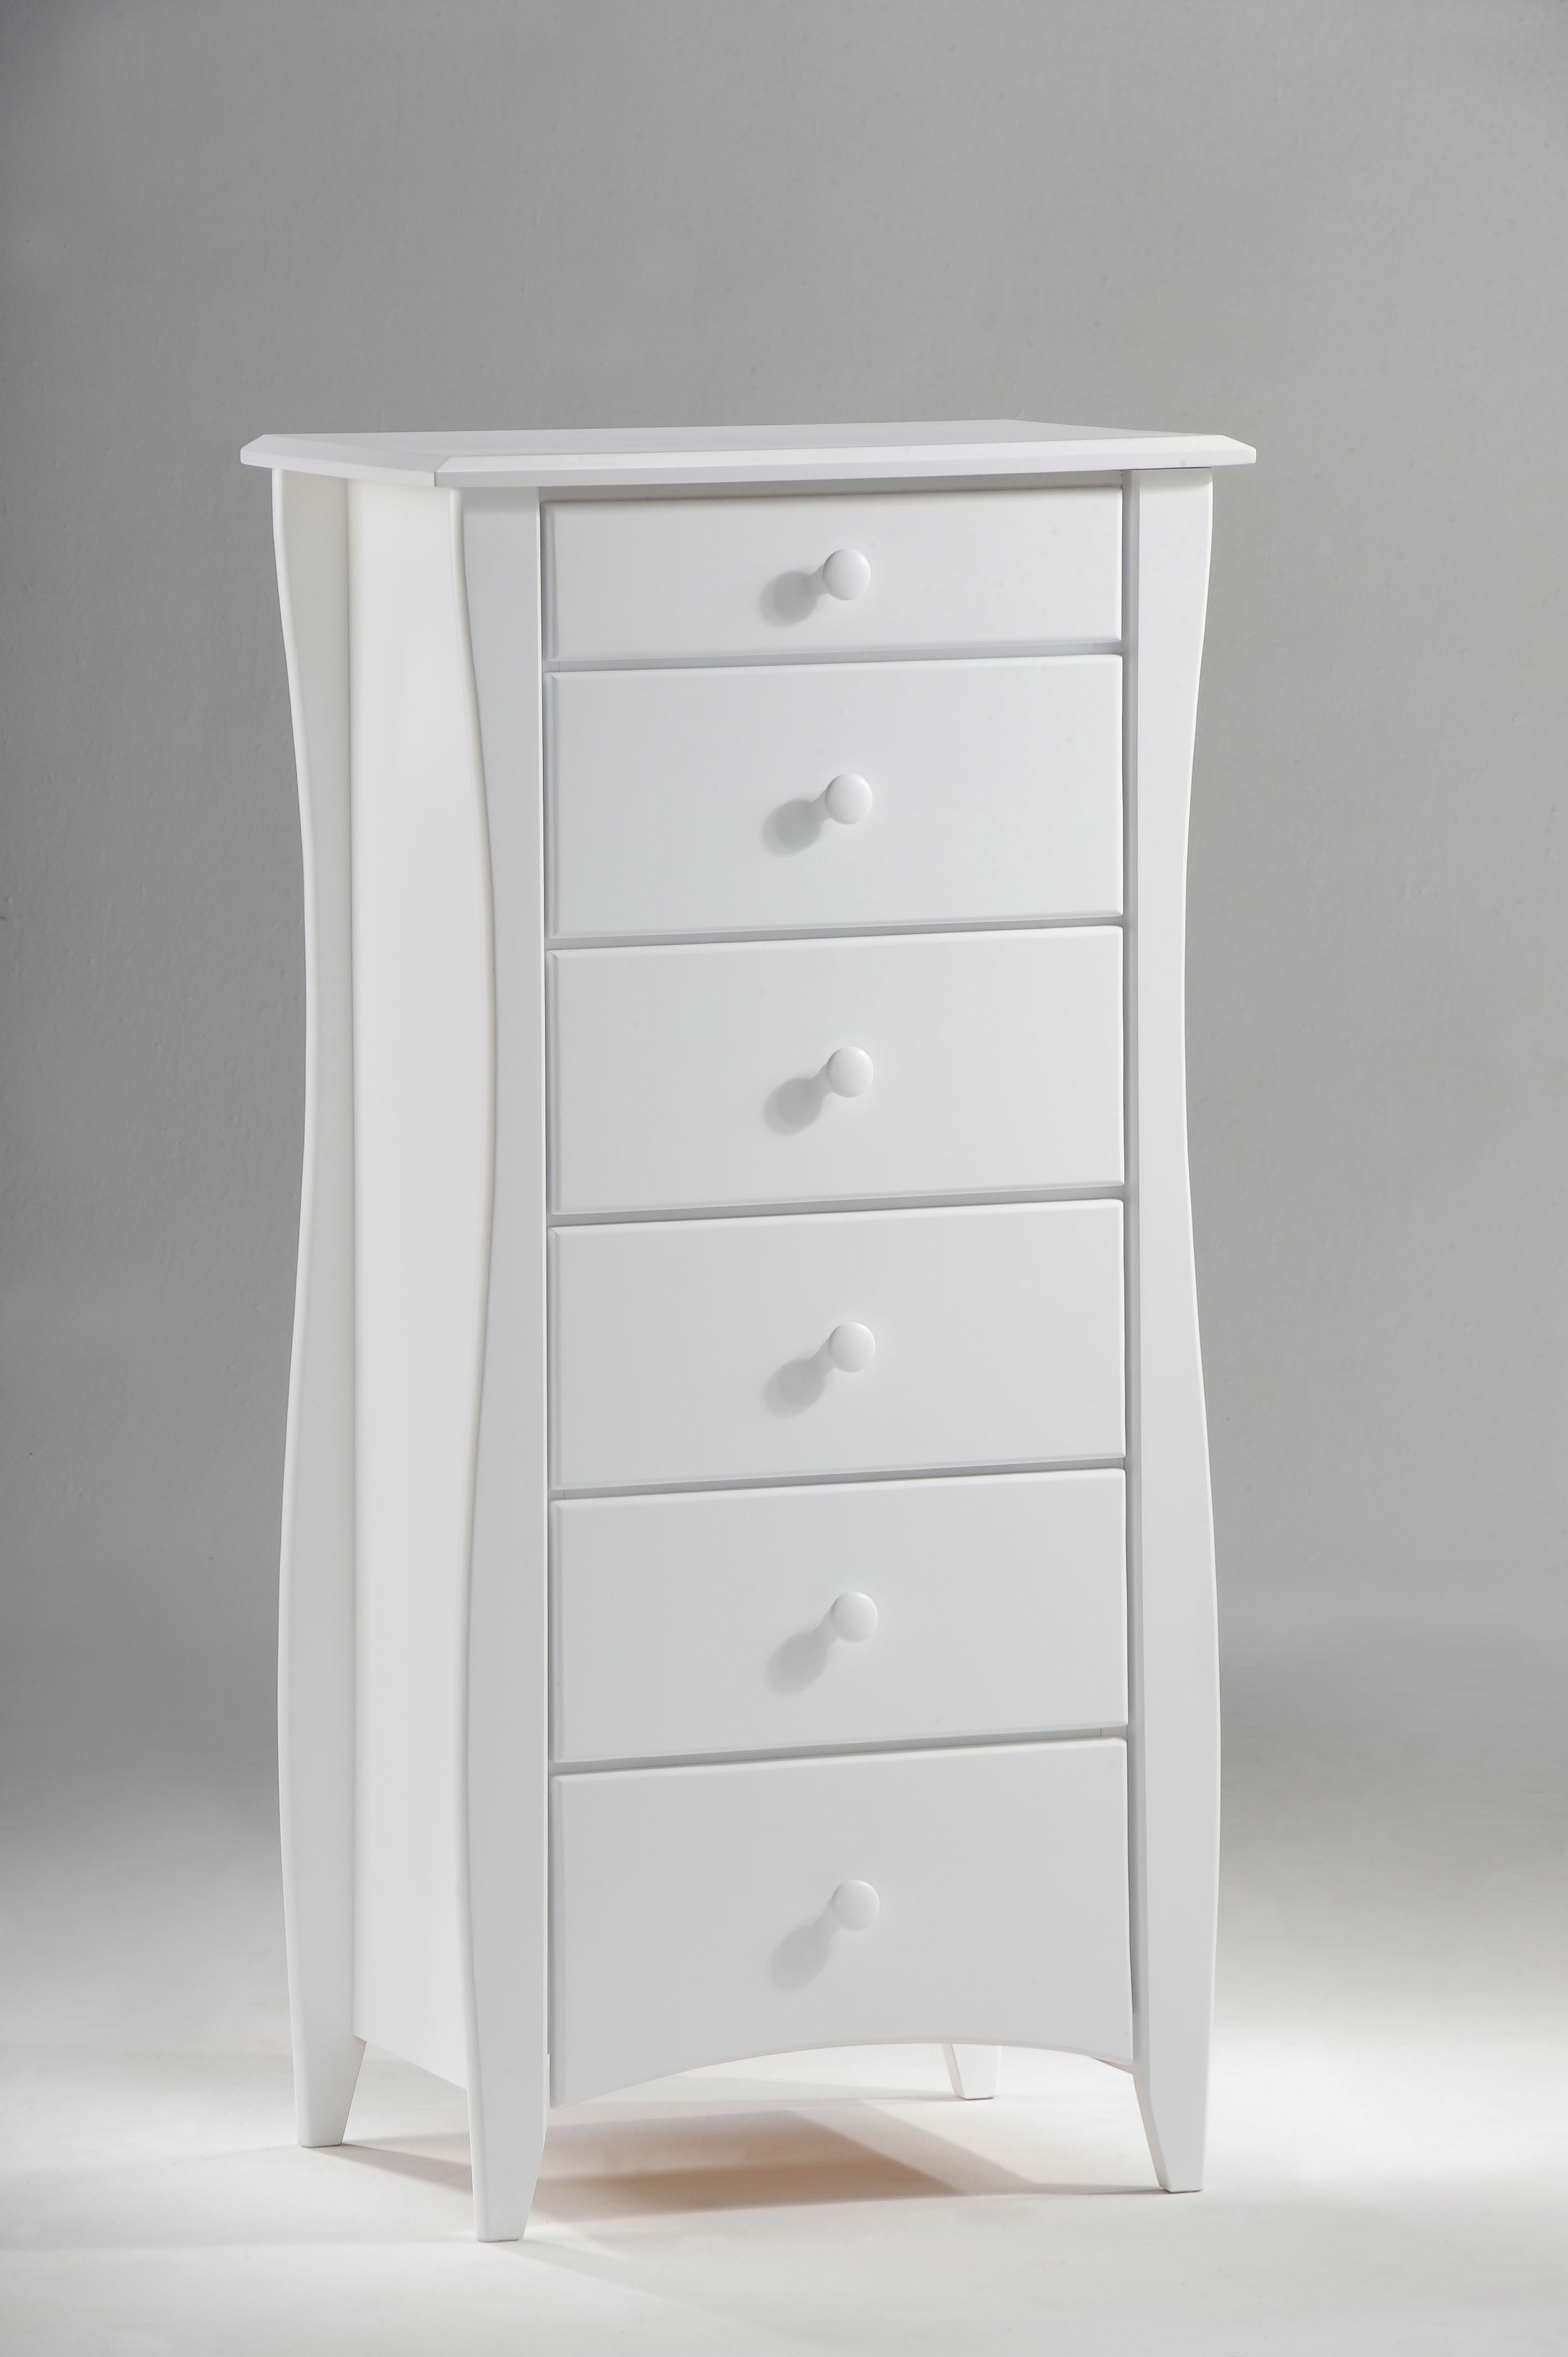 bedroom-storage-furniture-interior-high-carving-white-wooden-drawers-placed-on-the-white-floor-wonderful-wood-drawers-completing-your-house-furniture